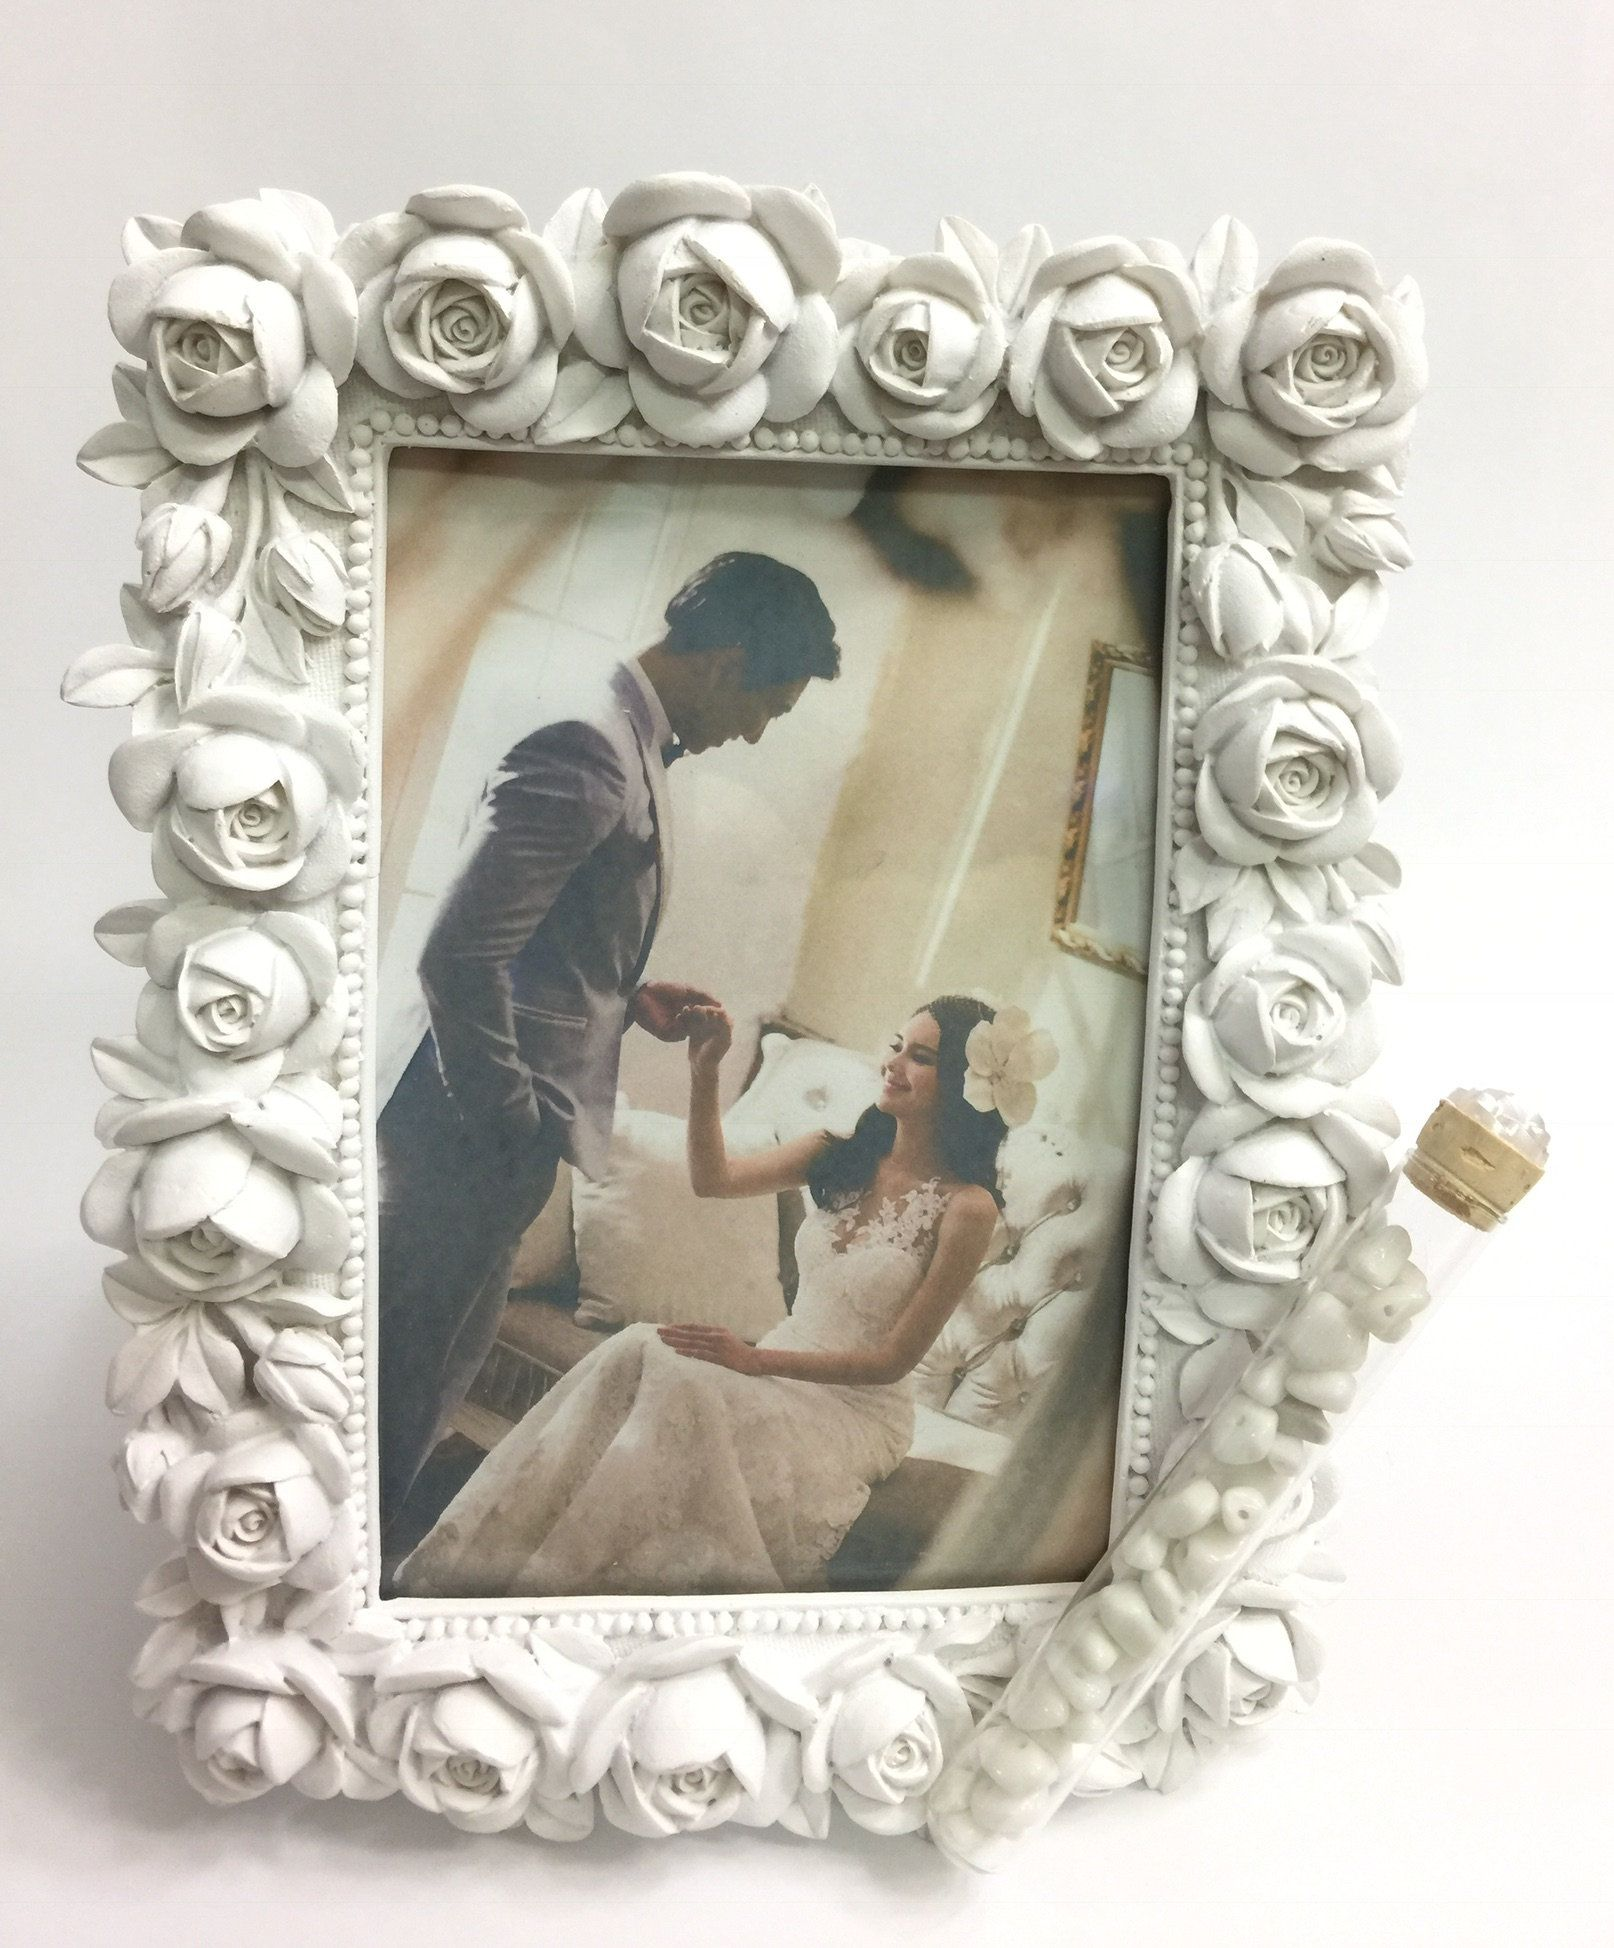 Jewish Wedding White Roses Photo Picture Frame With A Container For